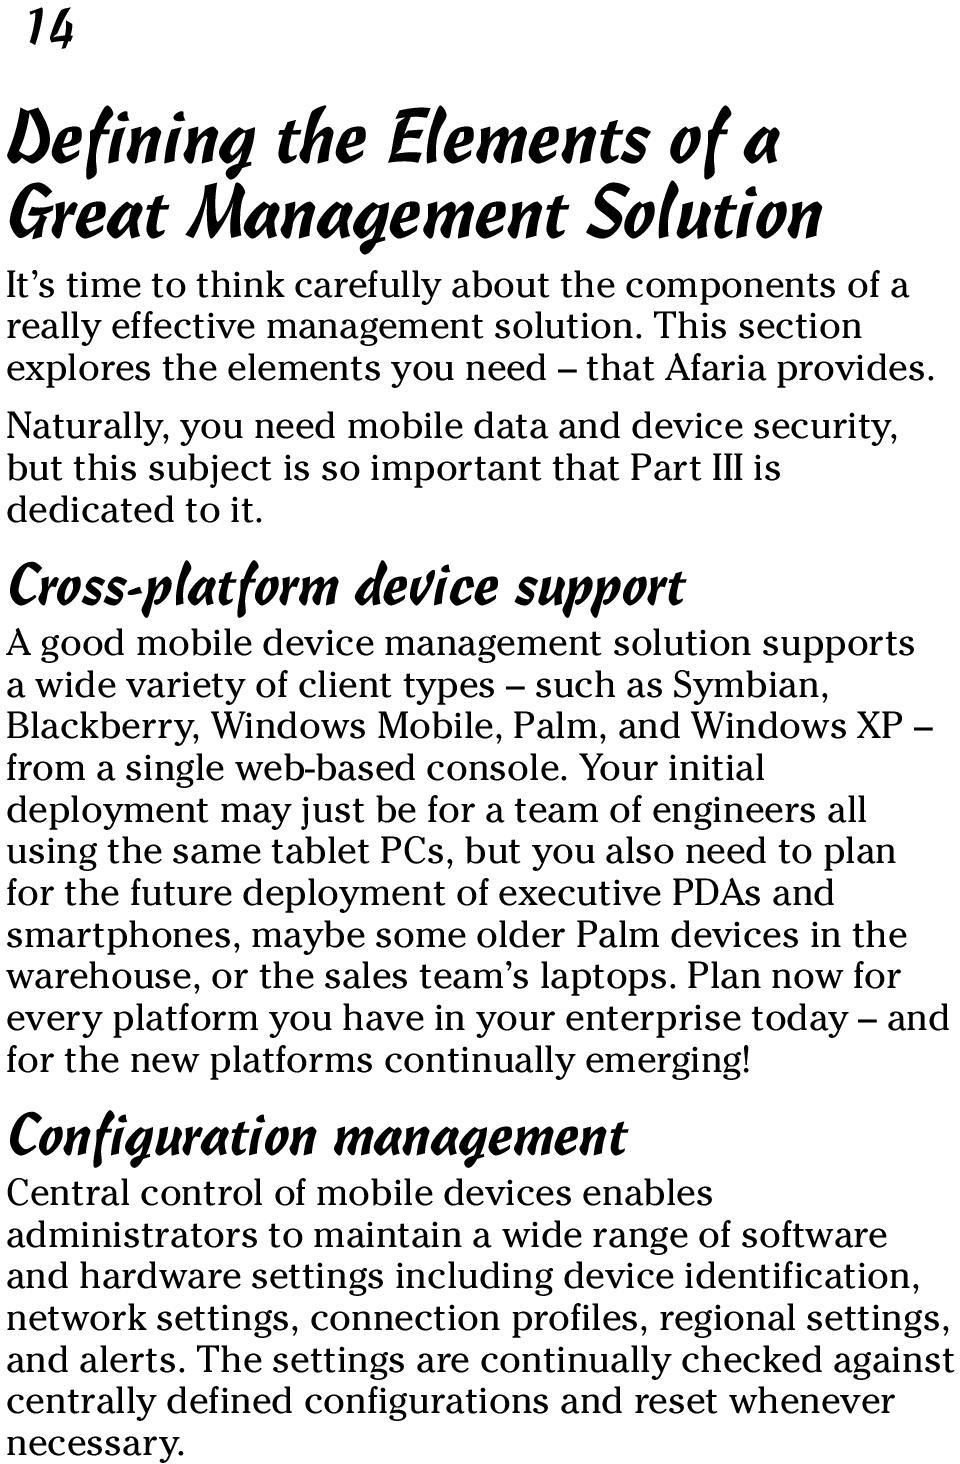 Cross-platform device support A good mobile device management solution supports a wide variety of client types such as Symbian, Blackberry, Windows Mobile, Palm, and Windows XP from a single